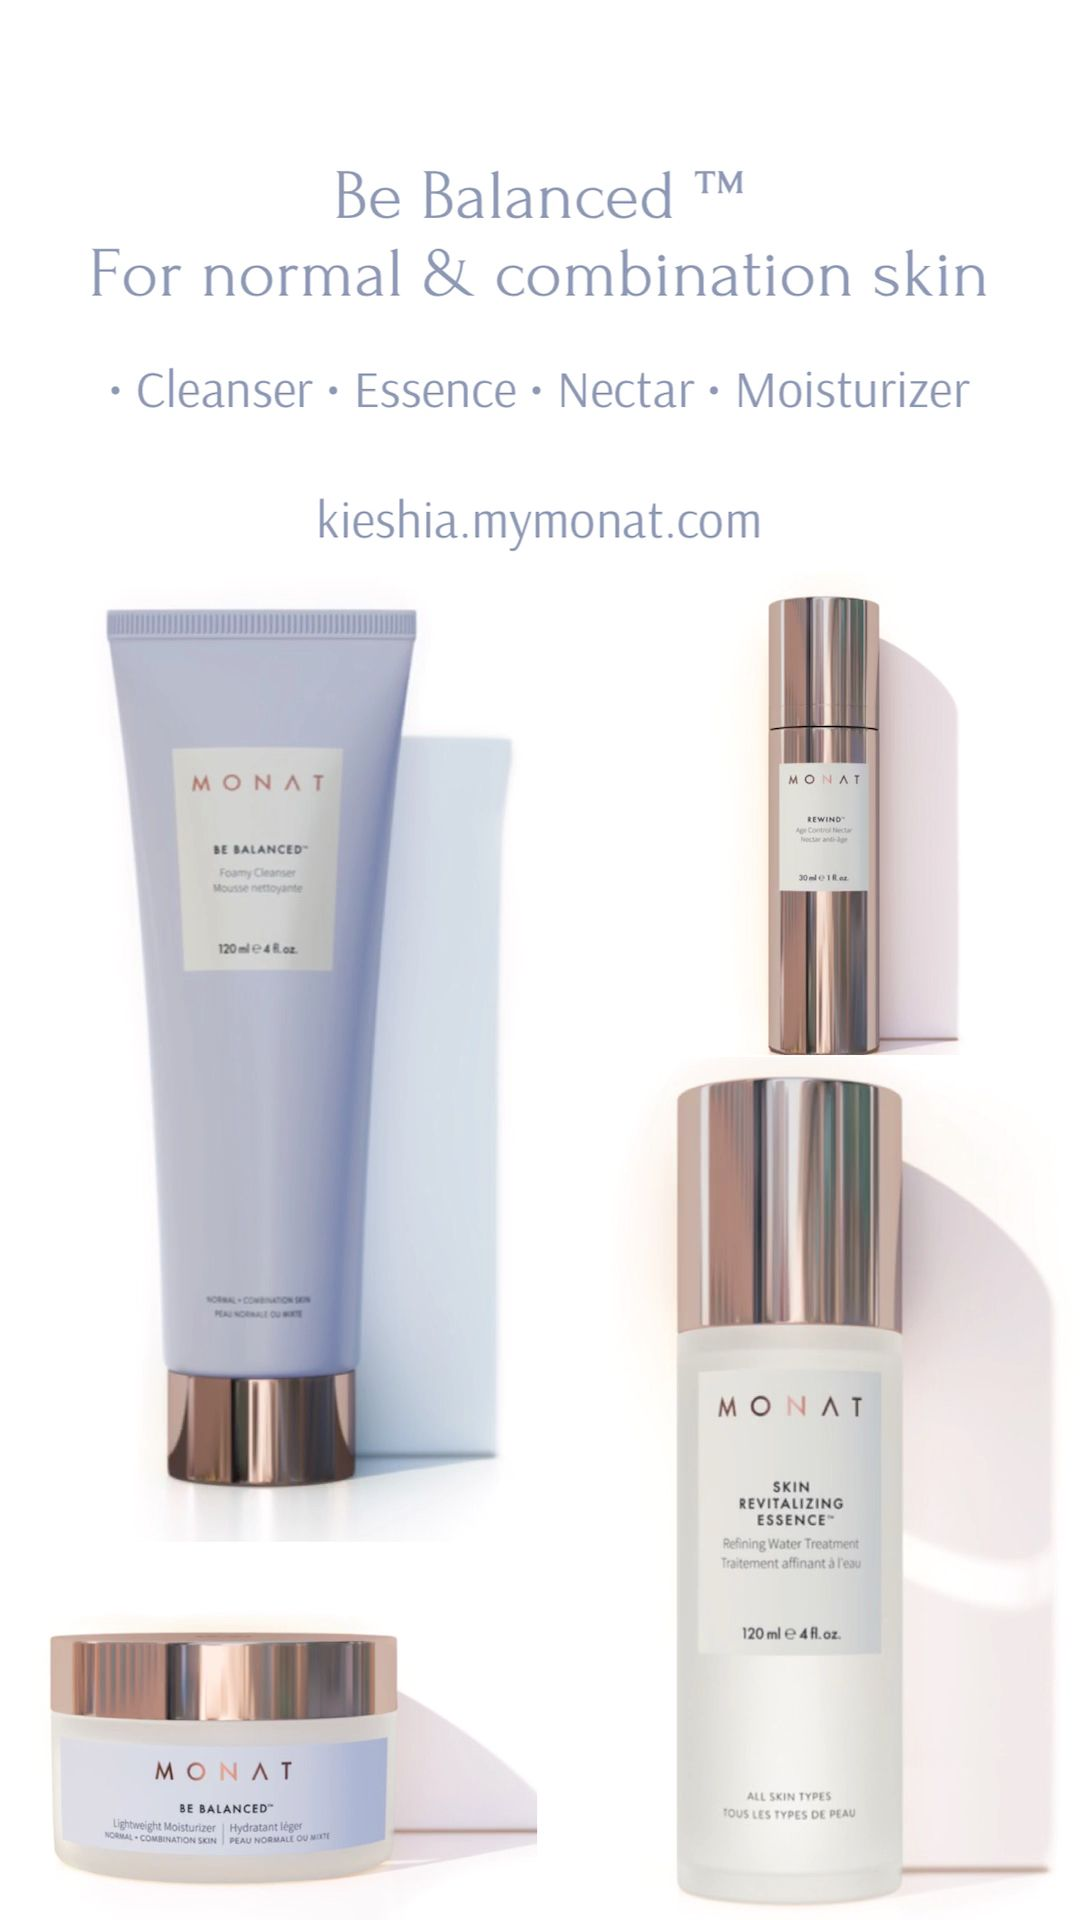 Photo of Be Balanced ™ Monat Skincare